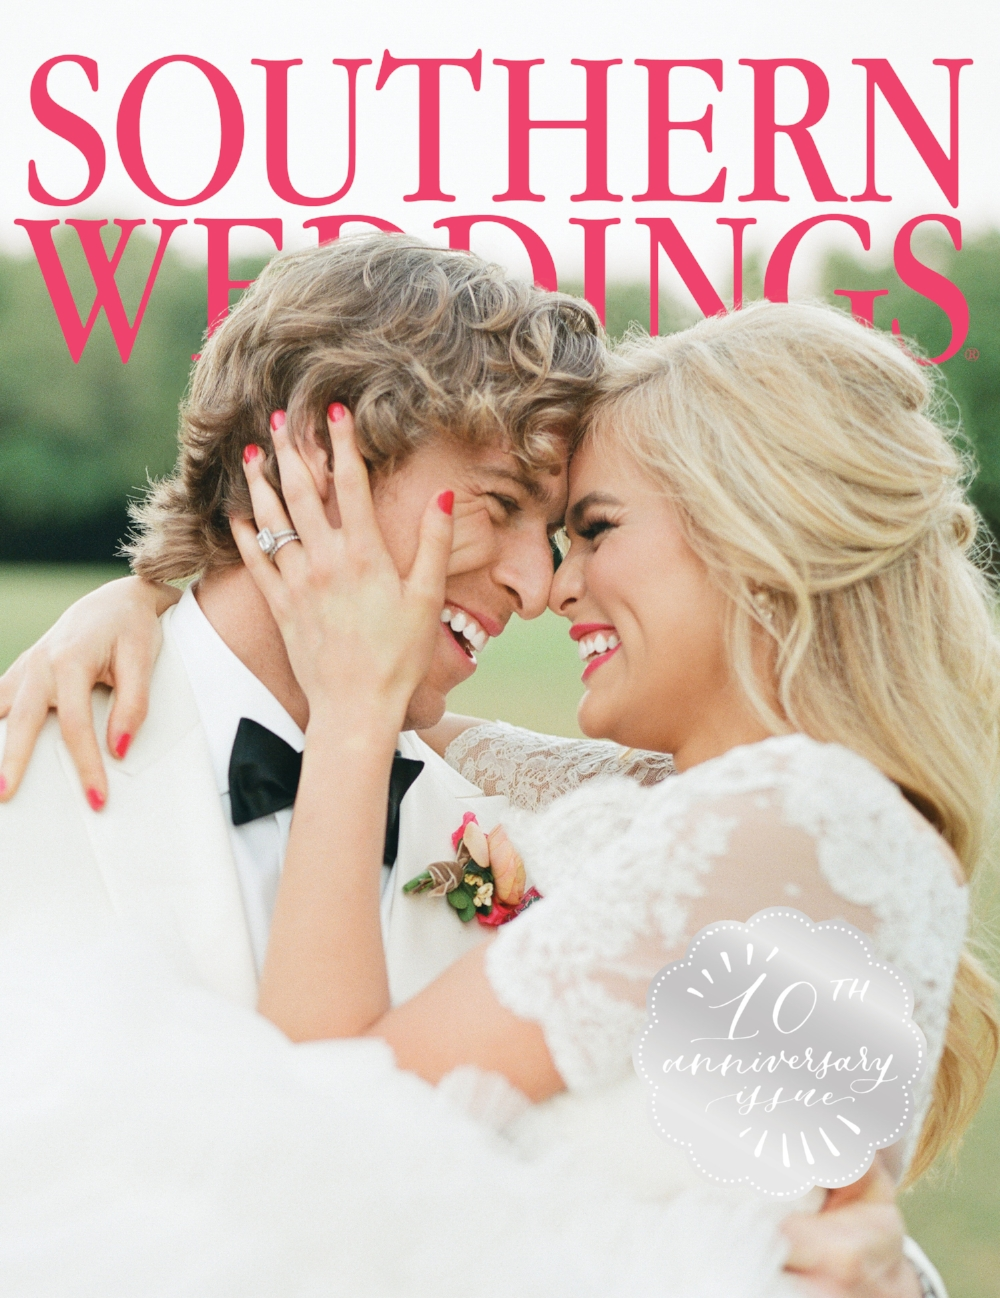 Southern Weddings v10 Magazine